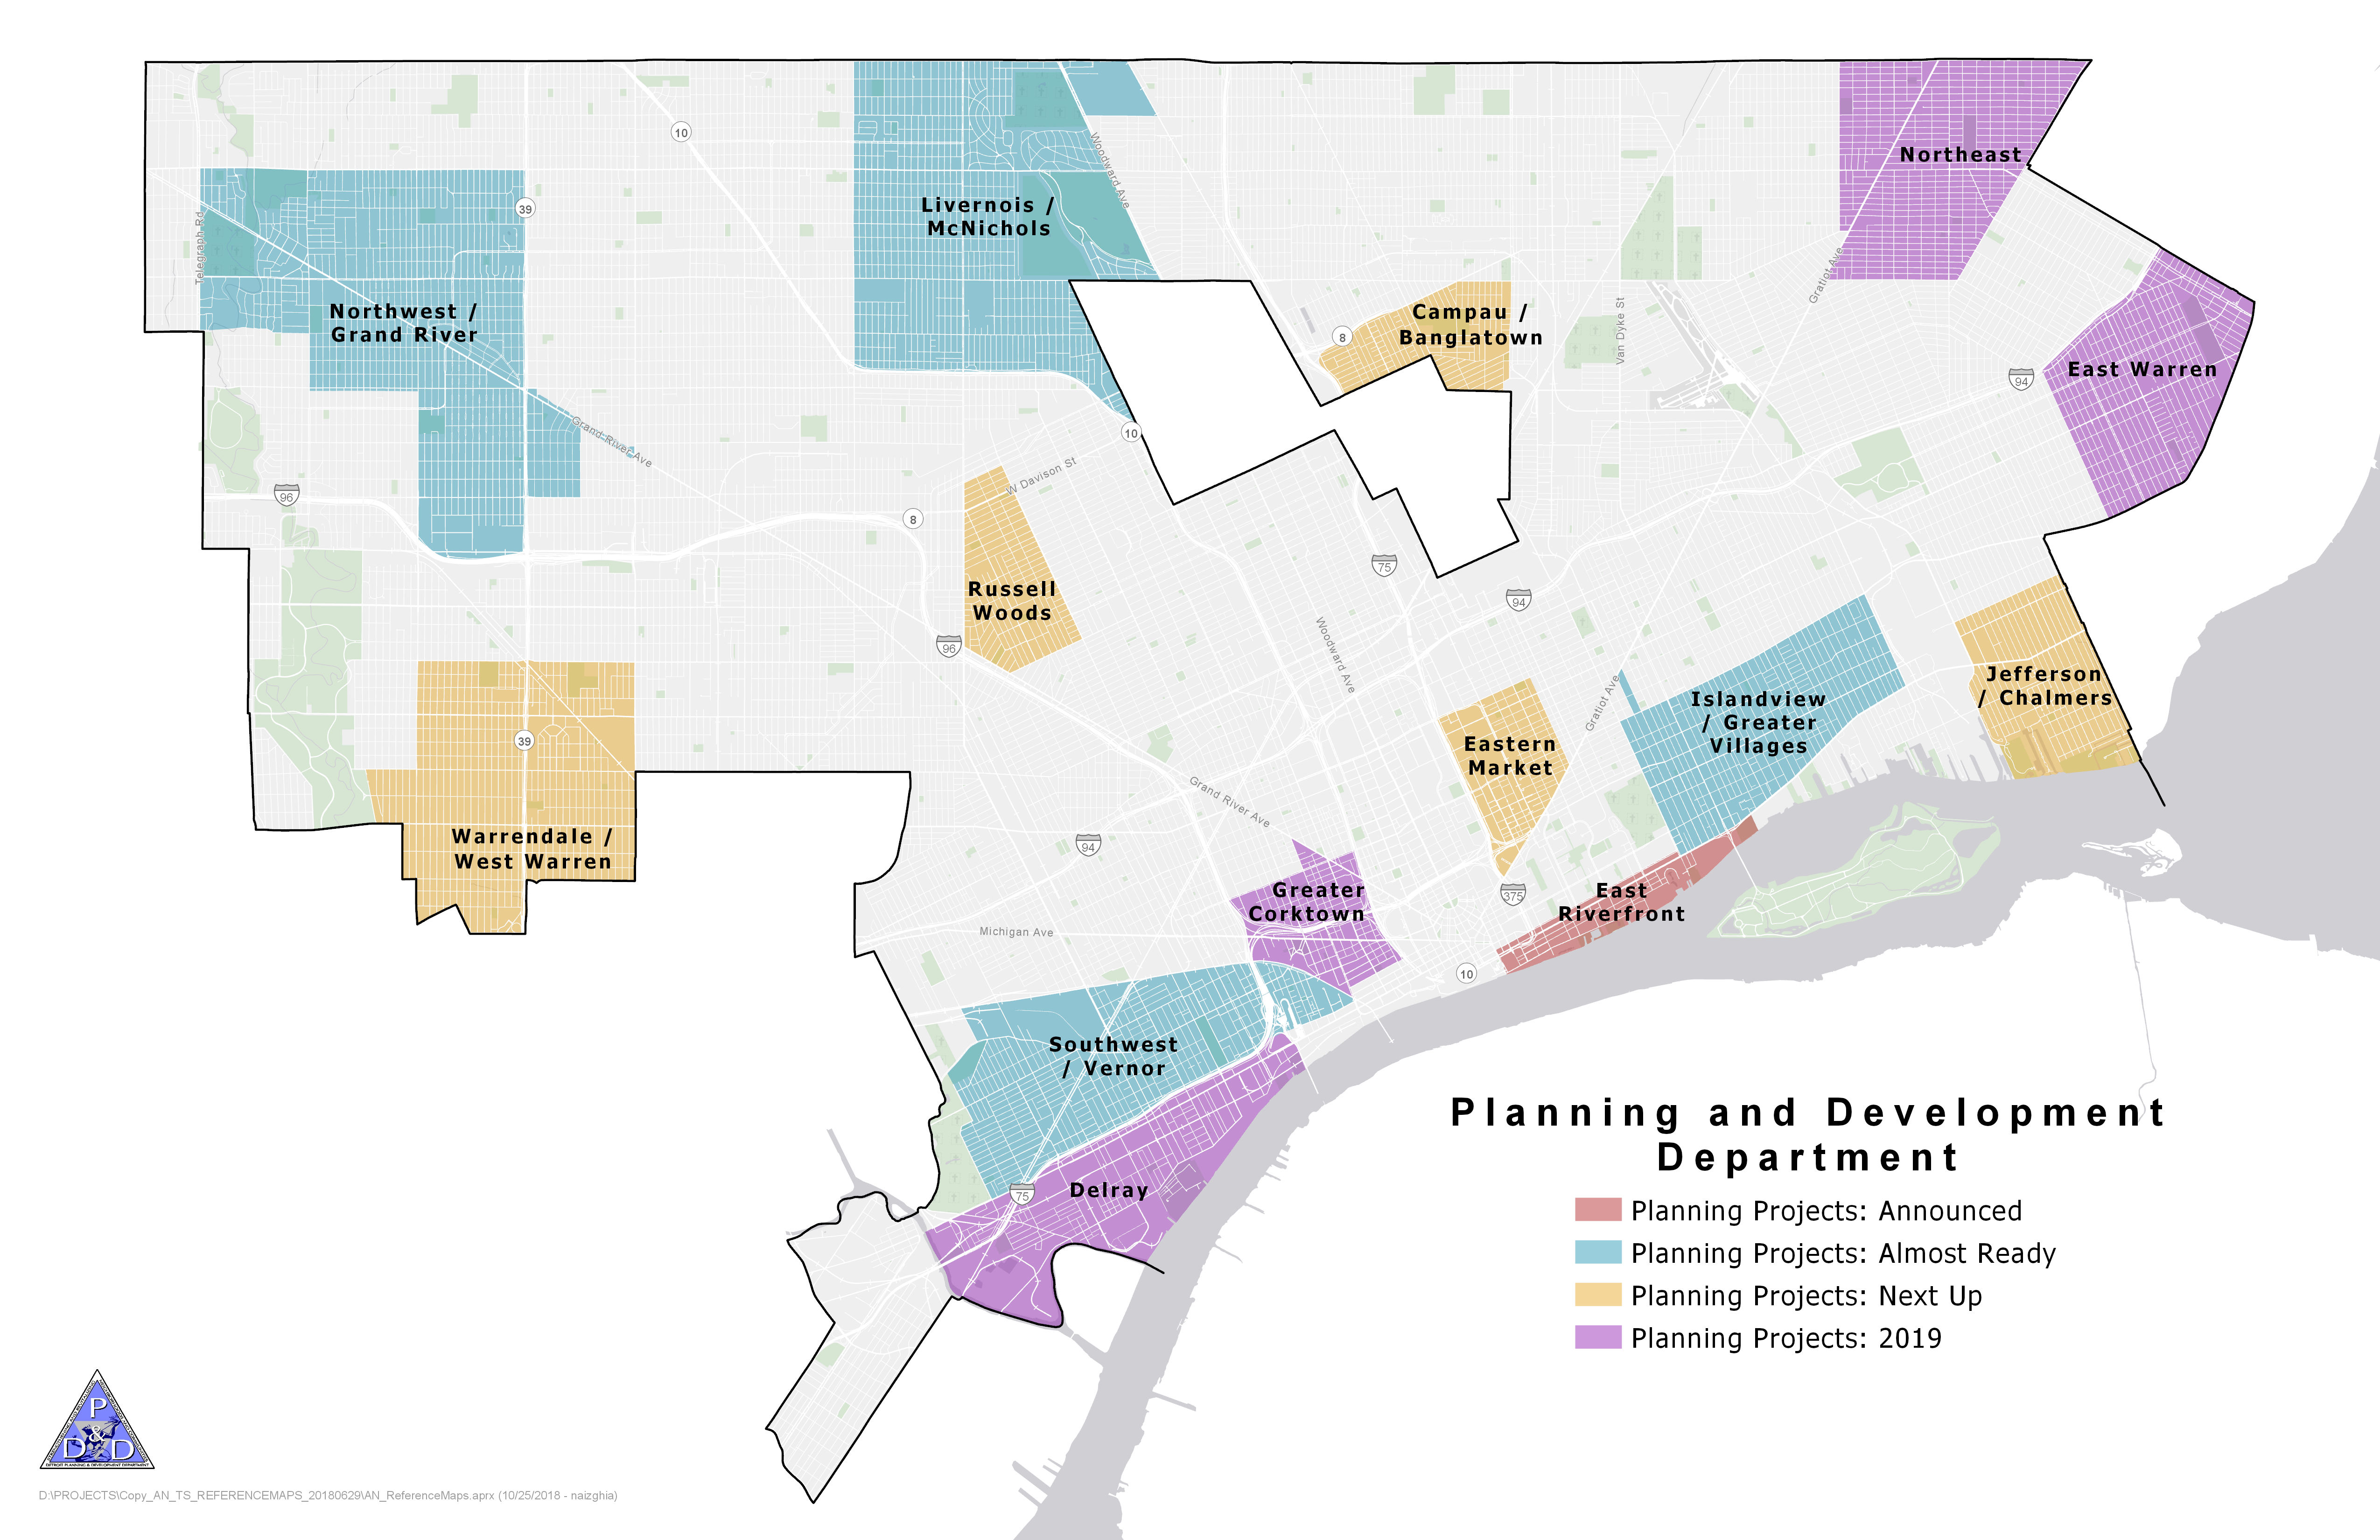 Citywide Development Projects Map